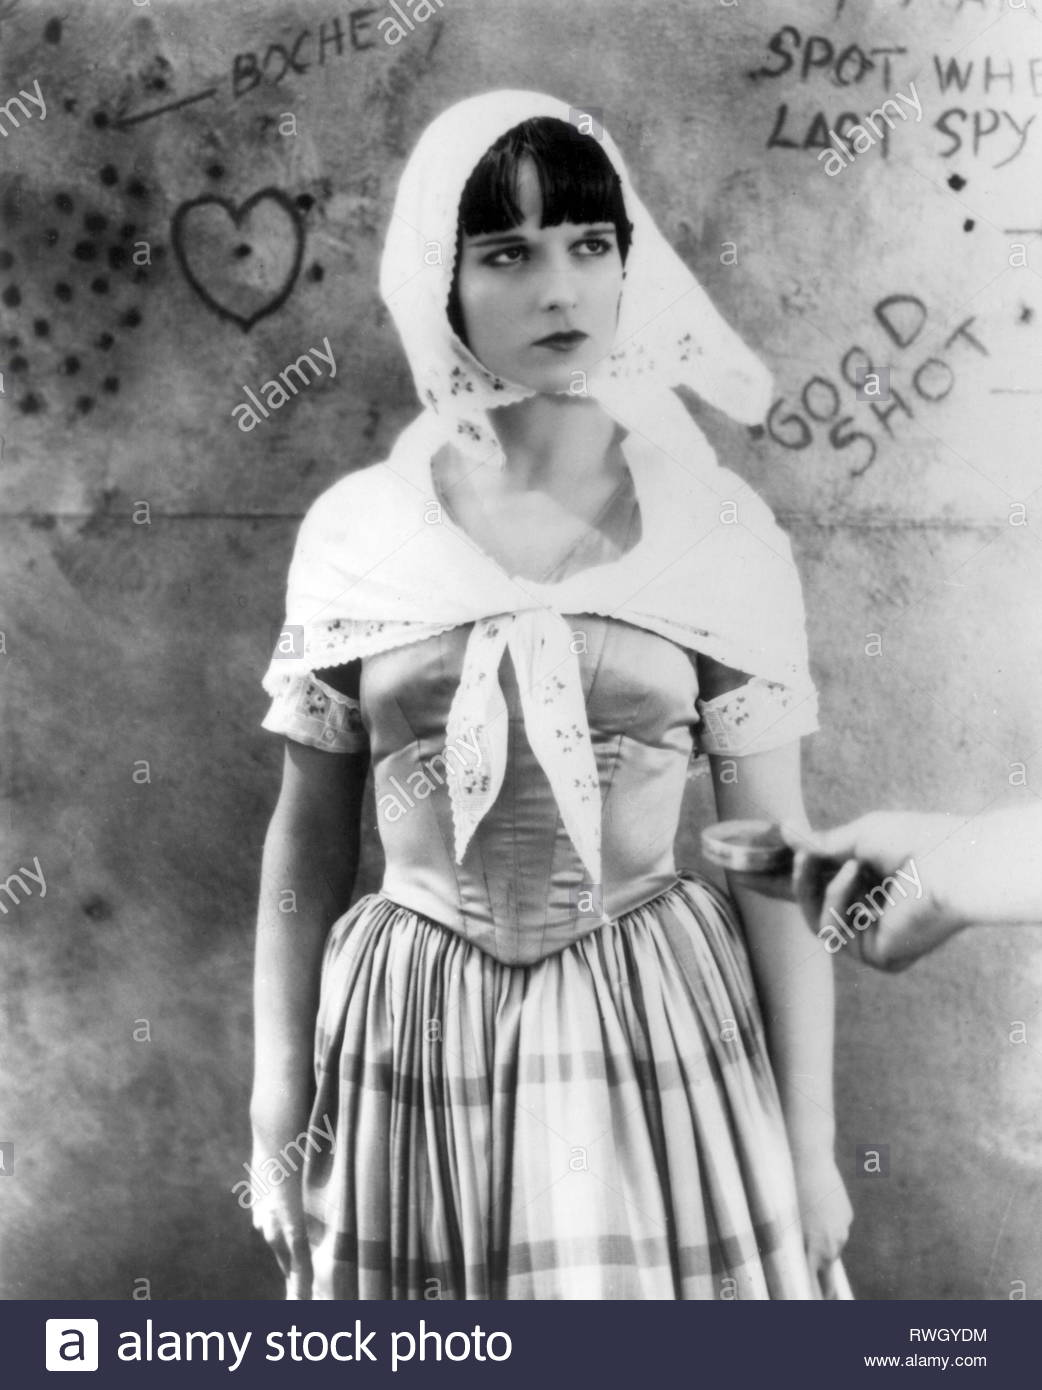 Brooks, Louise, 14.11.1906 - 8.8.1985, American actress, half-length, in scene from unknown movie, 1920s, Additional-Rights-Clearance-Info-Not-Available - Stock Image